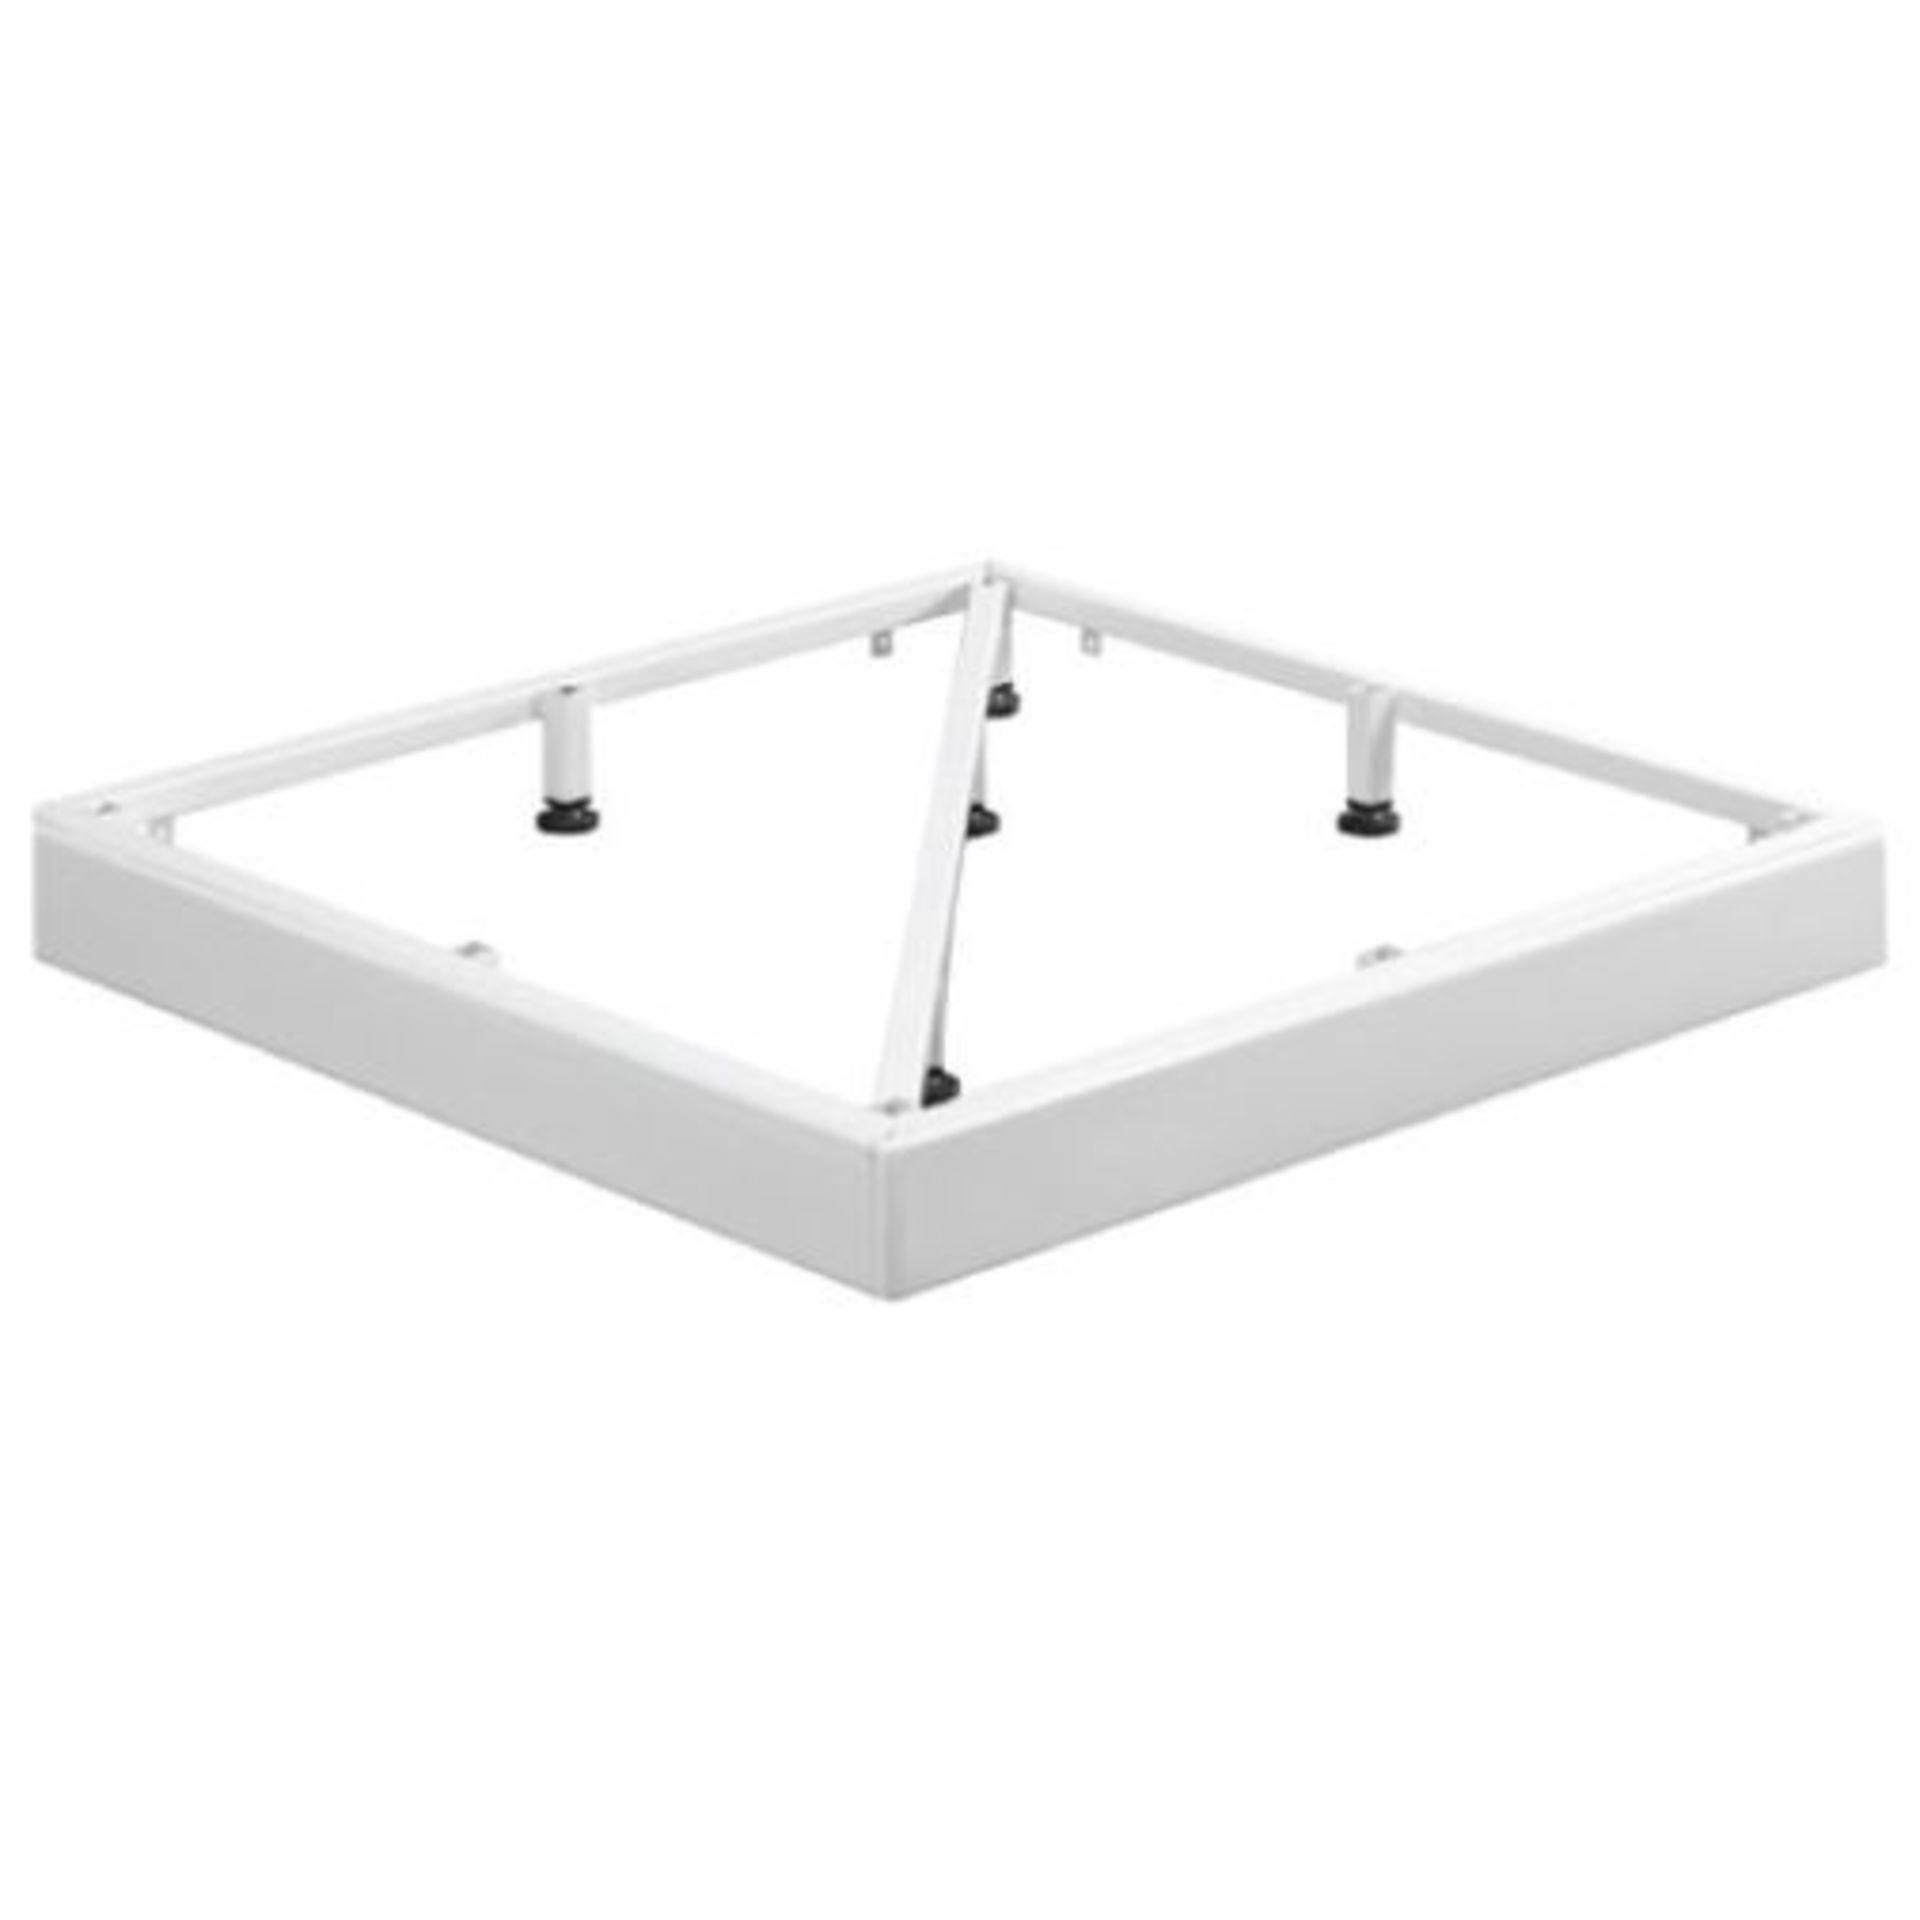 Lot 14 - SURFACE 760 X 760MM METAL FRAMED SHOWER TRAY FIXING KIT RRP £125